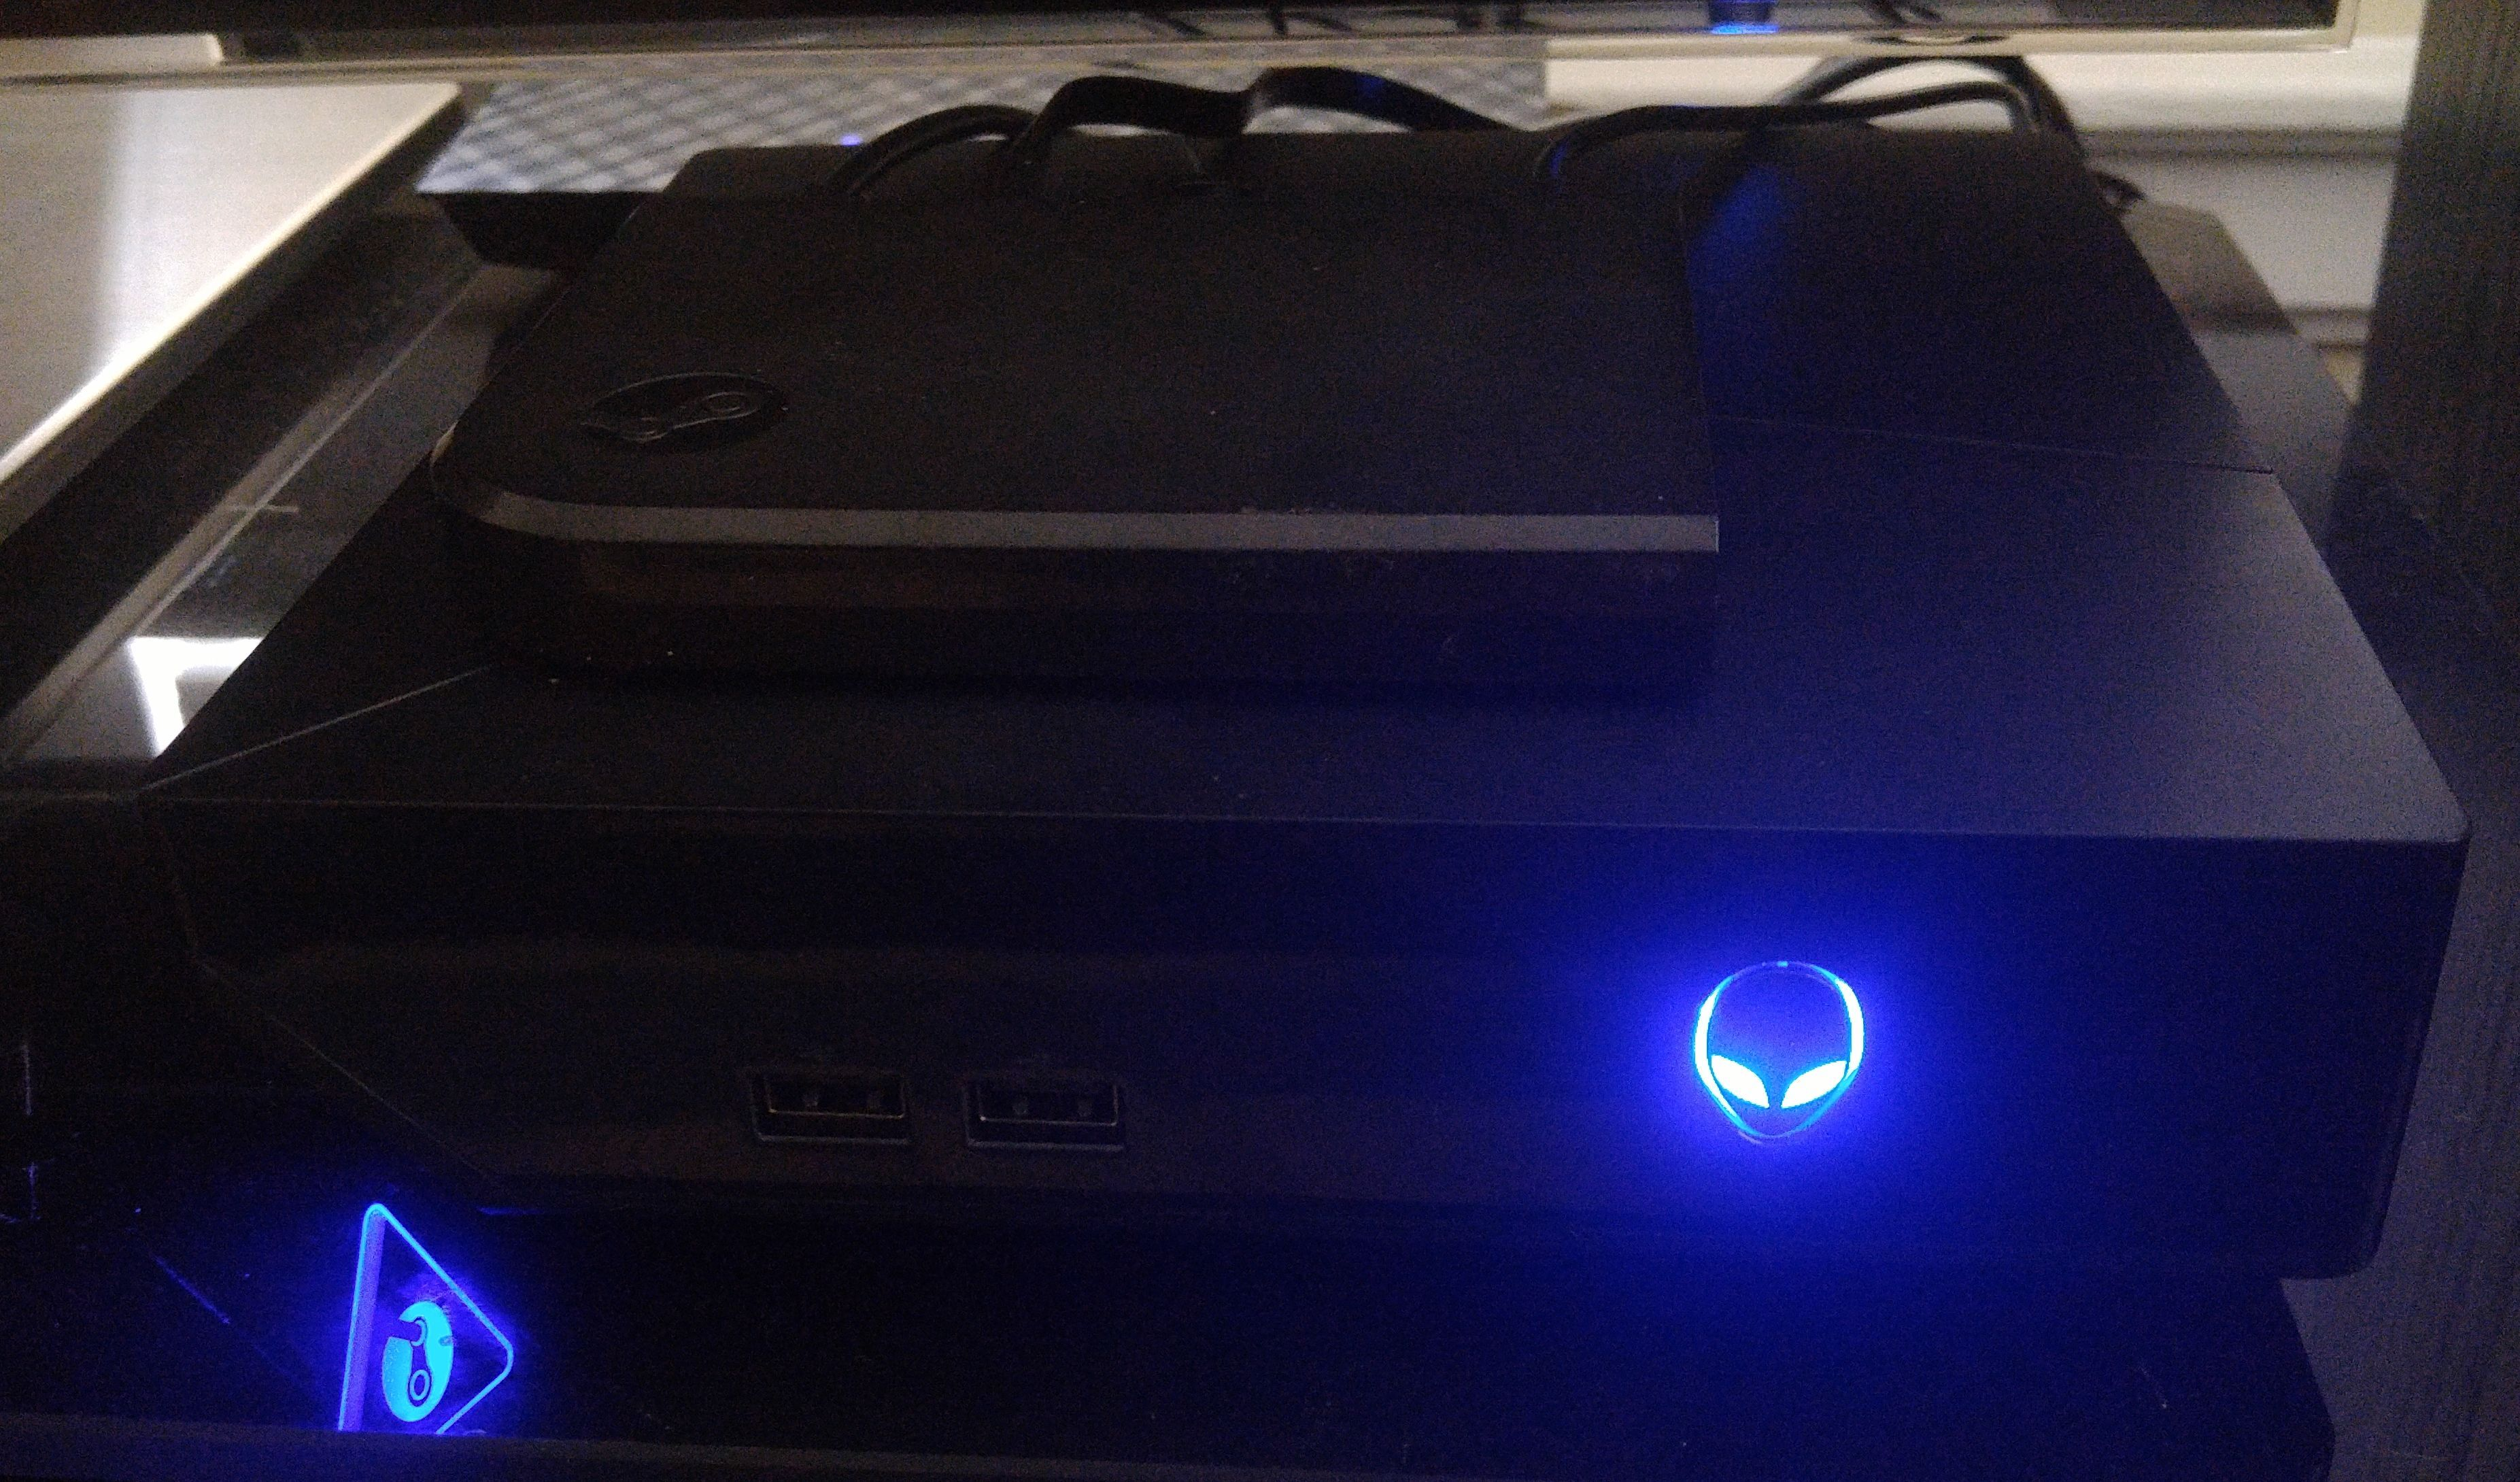 steam machine alienware i7